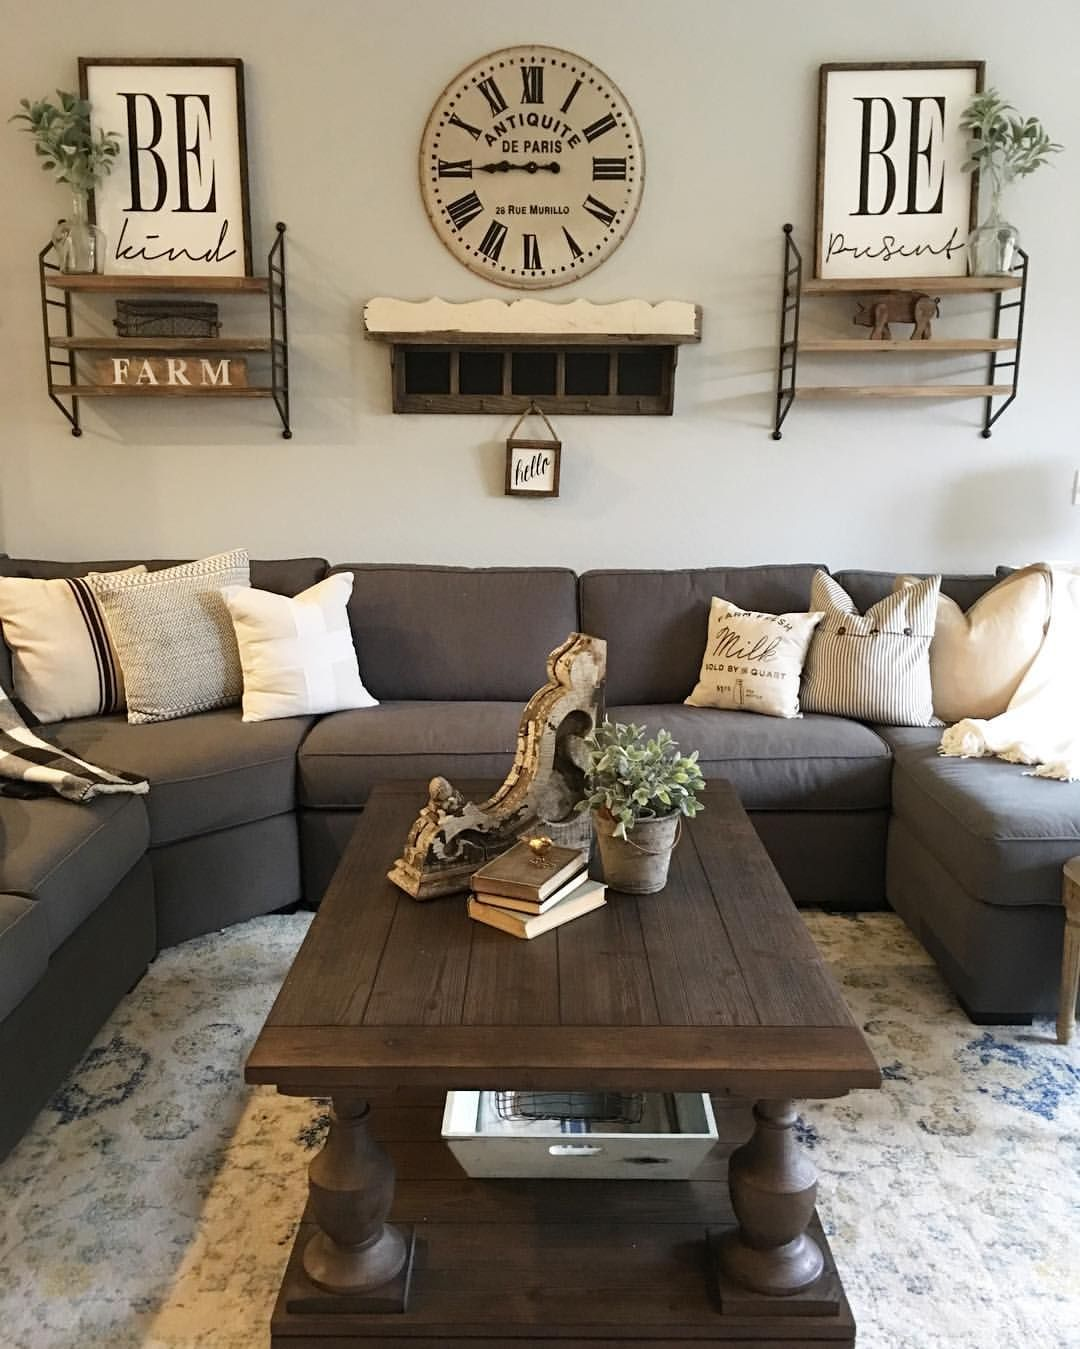 23 Farmhouse Living Room Ideas Ideas To Try In 2020 Don Pedro